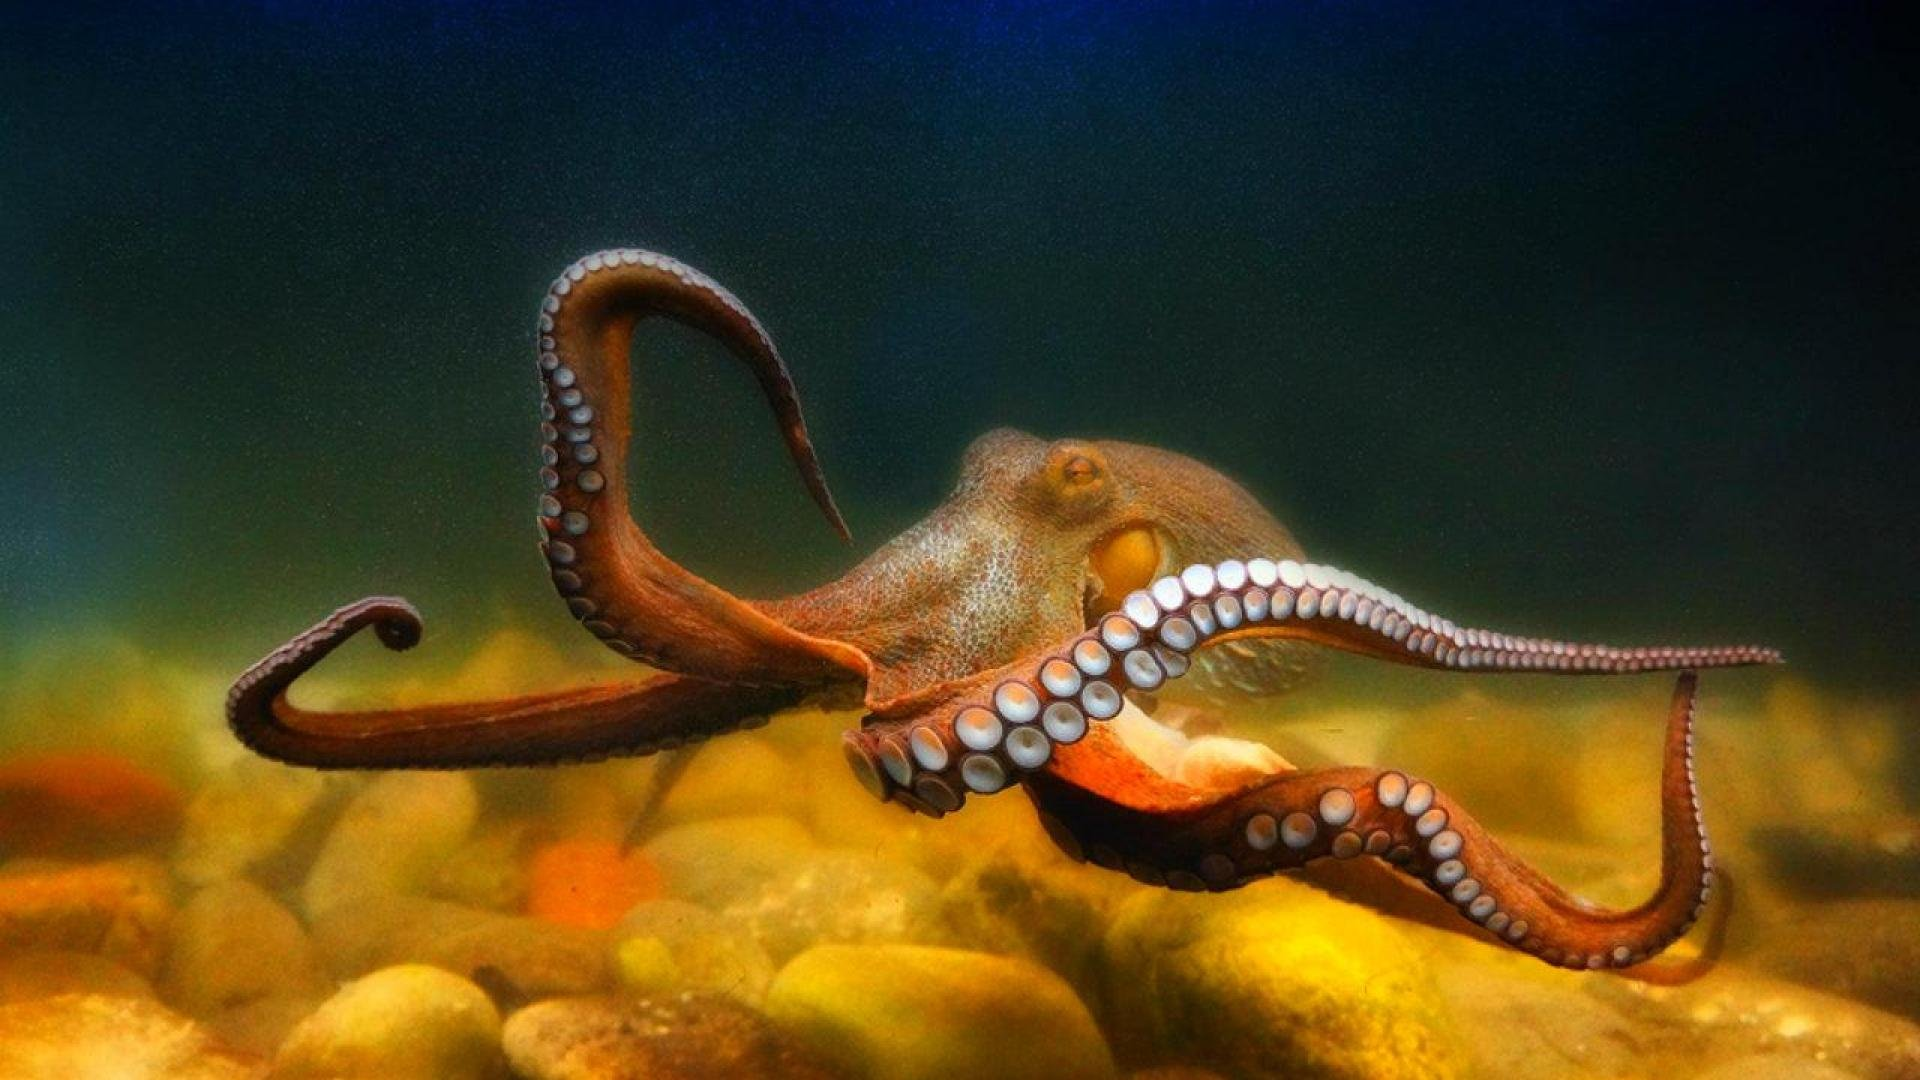 OCTOPUS sealife underwater ocean sea wallpaper backgroundUnderwater Octopus